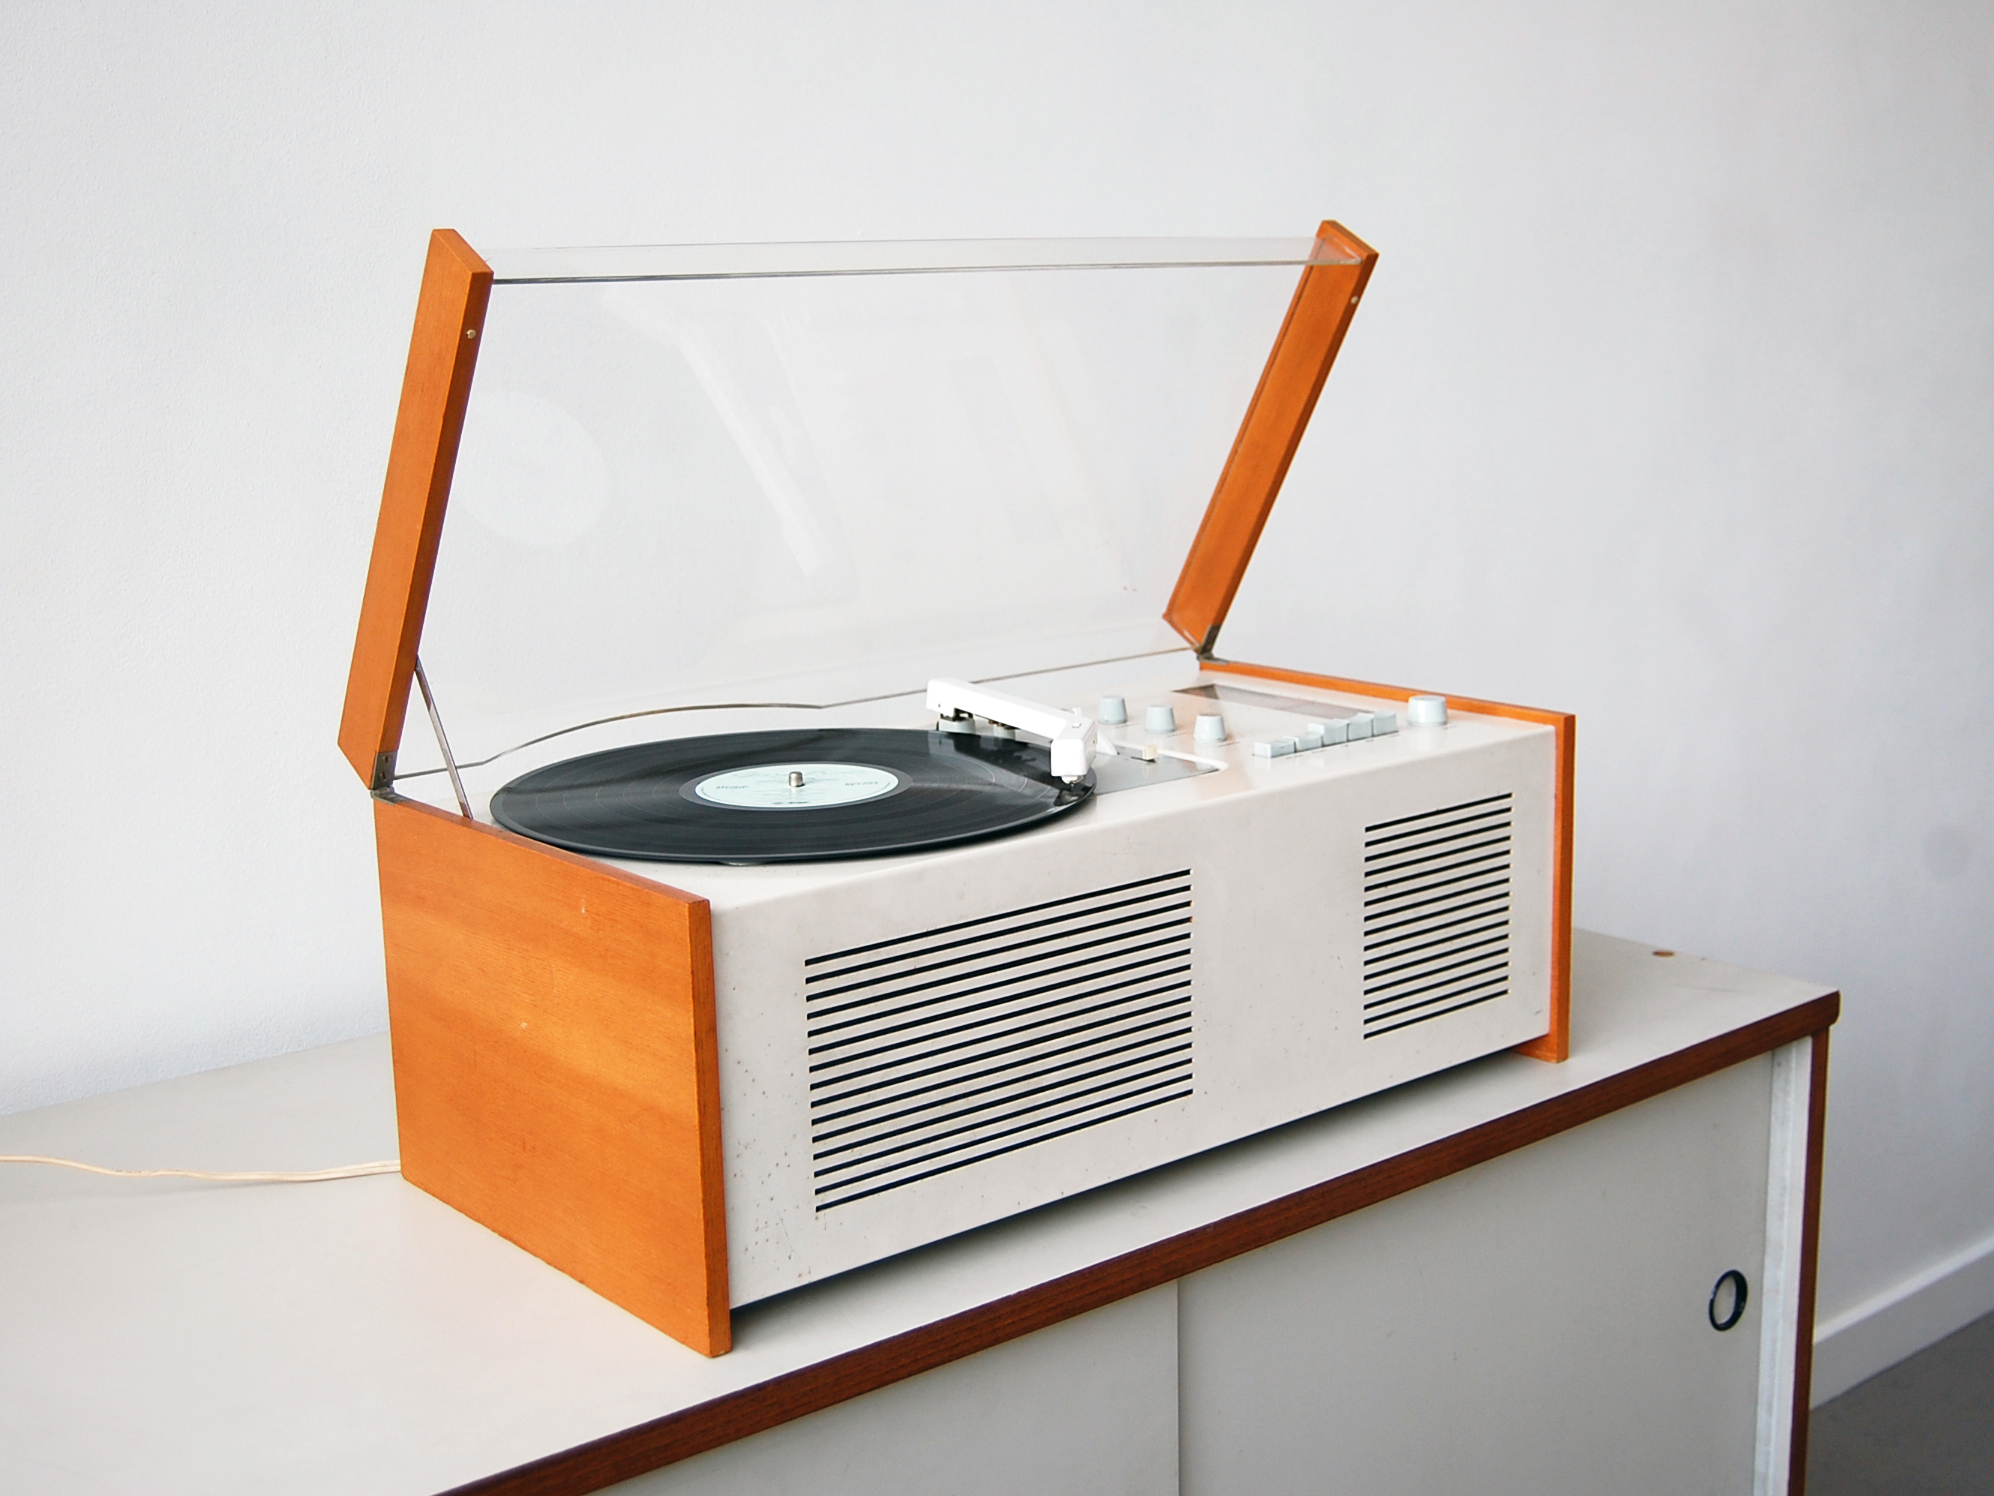 Hans Gugelot Dieter Rams Sk61 Braun 1961 Works Of Design